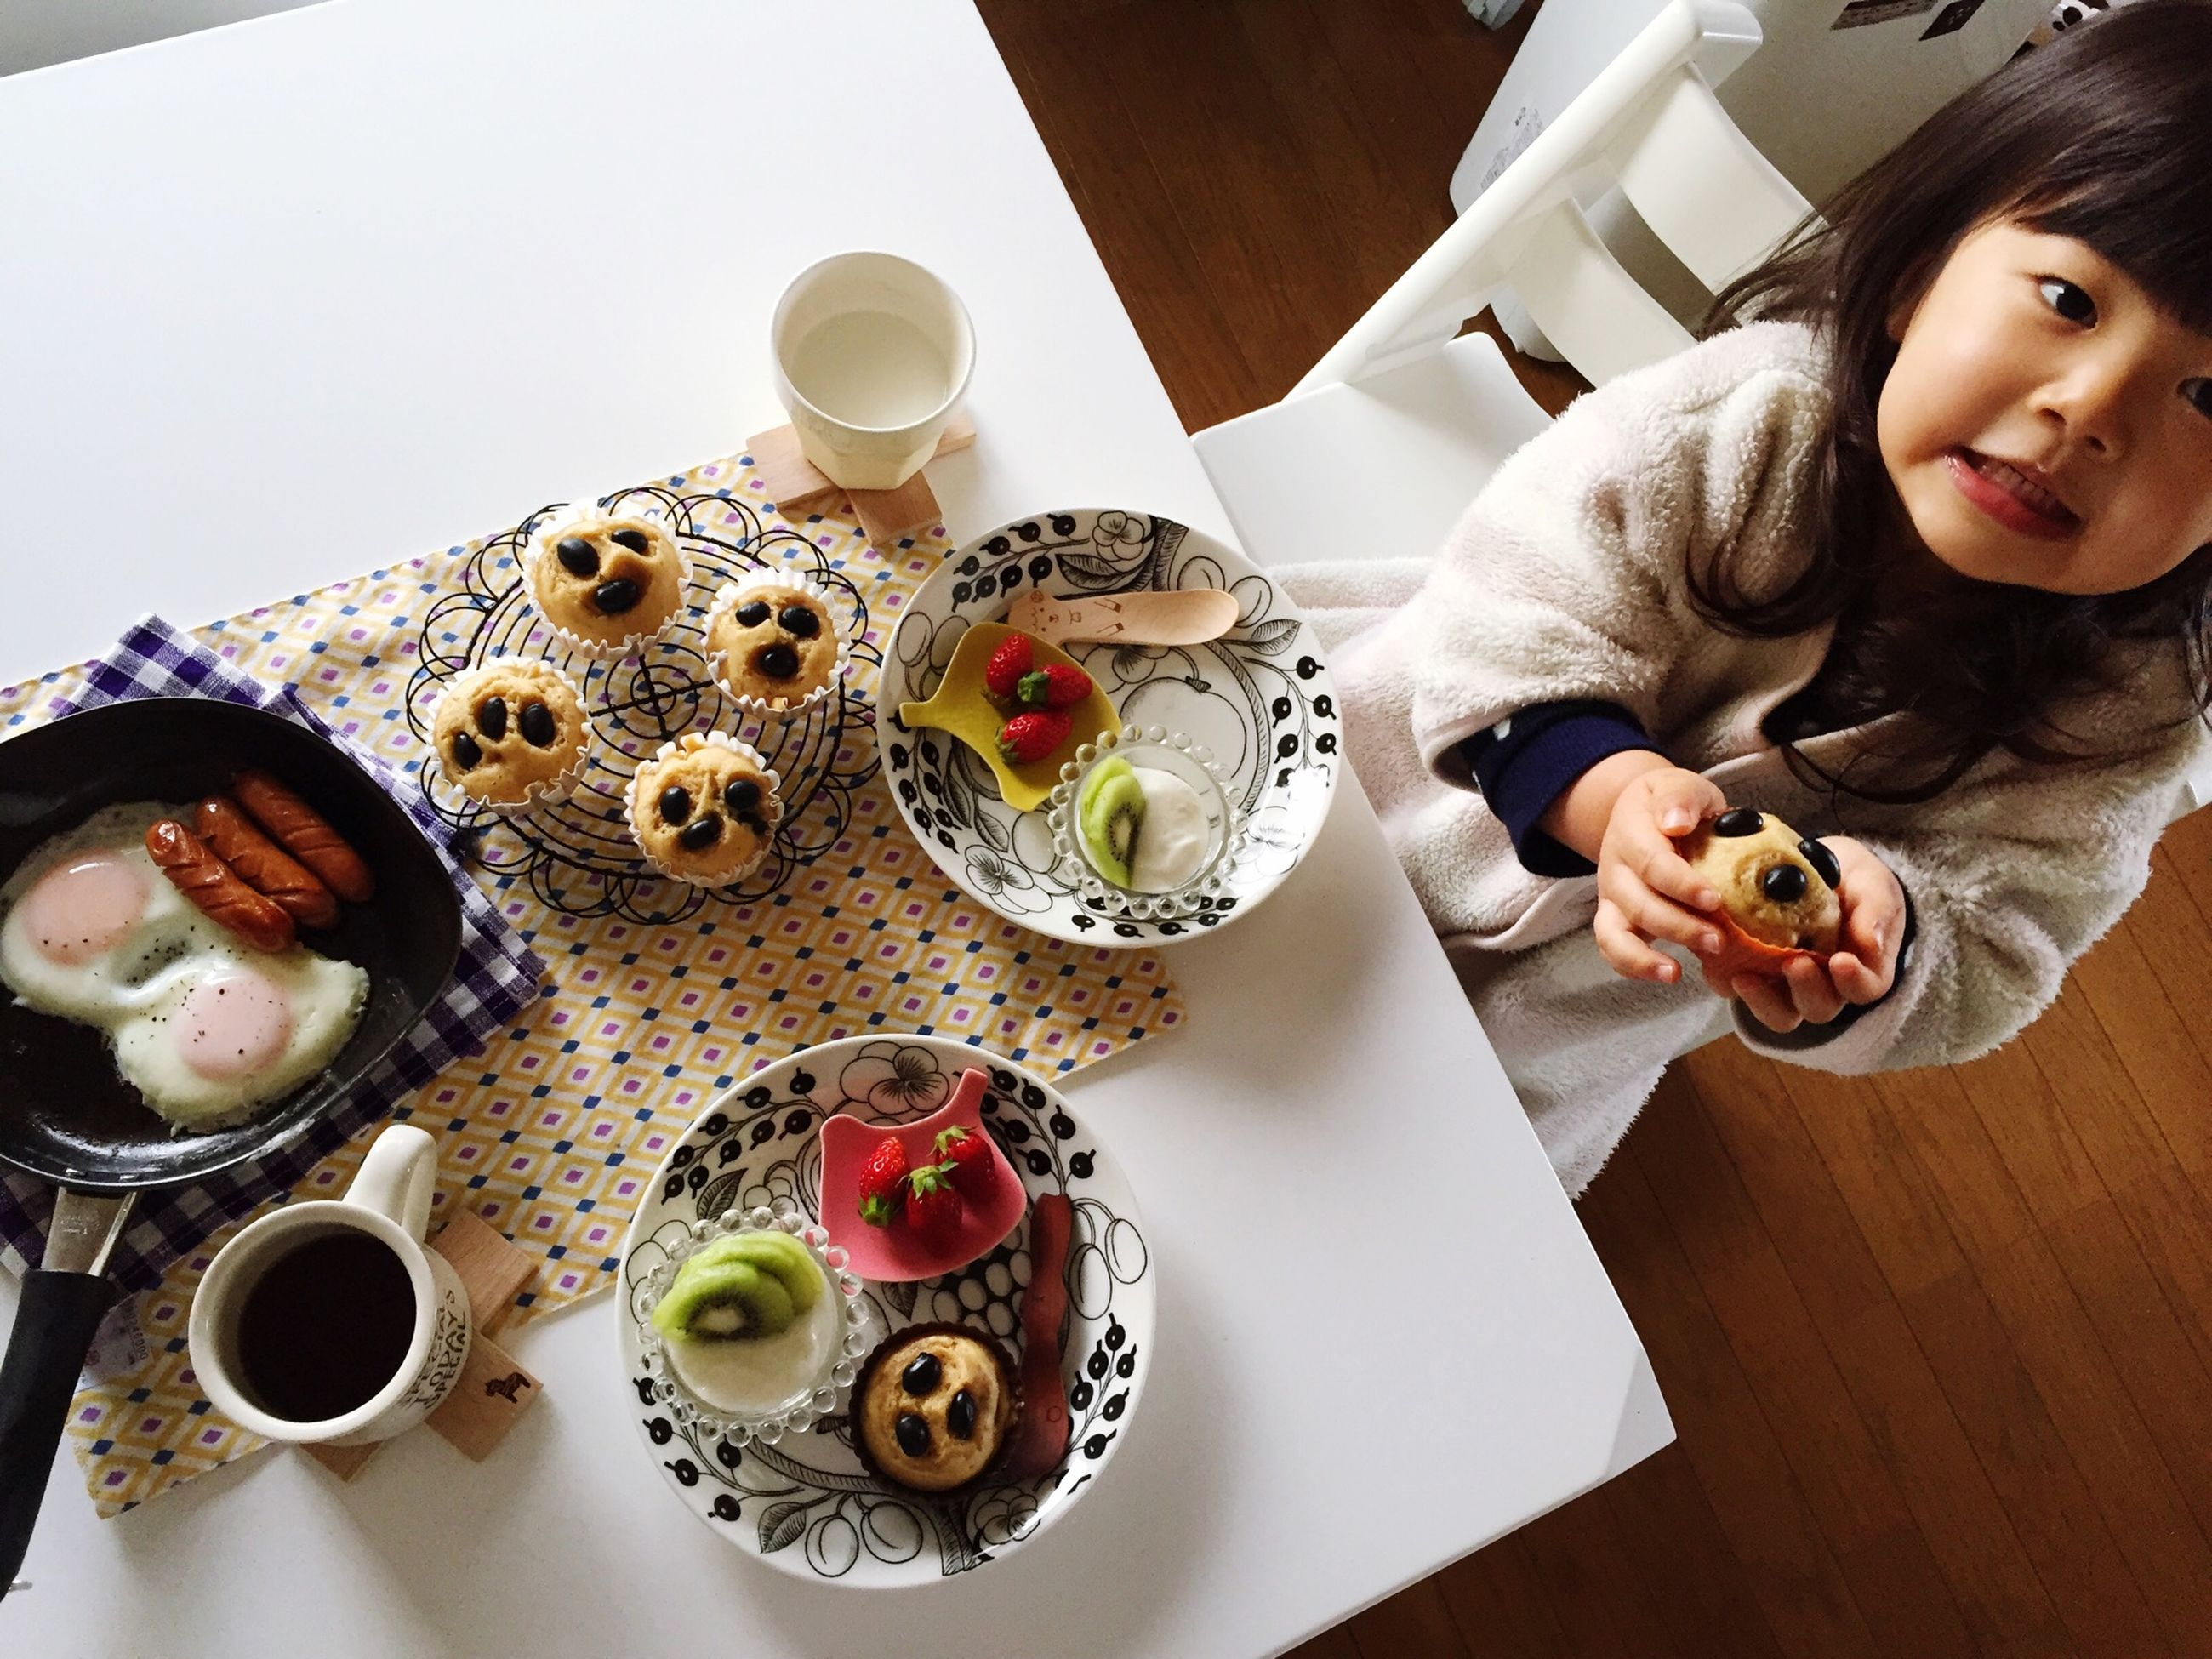 indoors, food and drink, plate, table, food, drink, lifestyles, leisure activity, freshness, refreshment, sweet food, high angle view, person, dessert, ready-to-eat, holding, indulgence, childhood